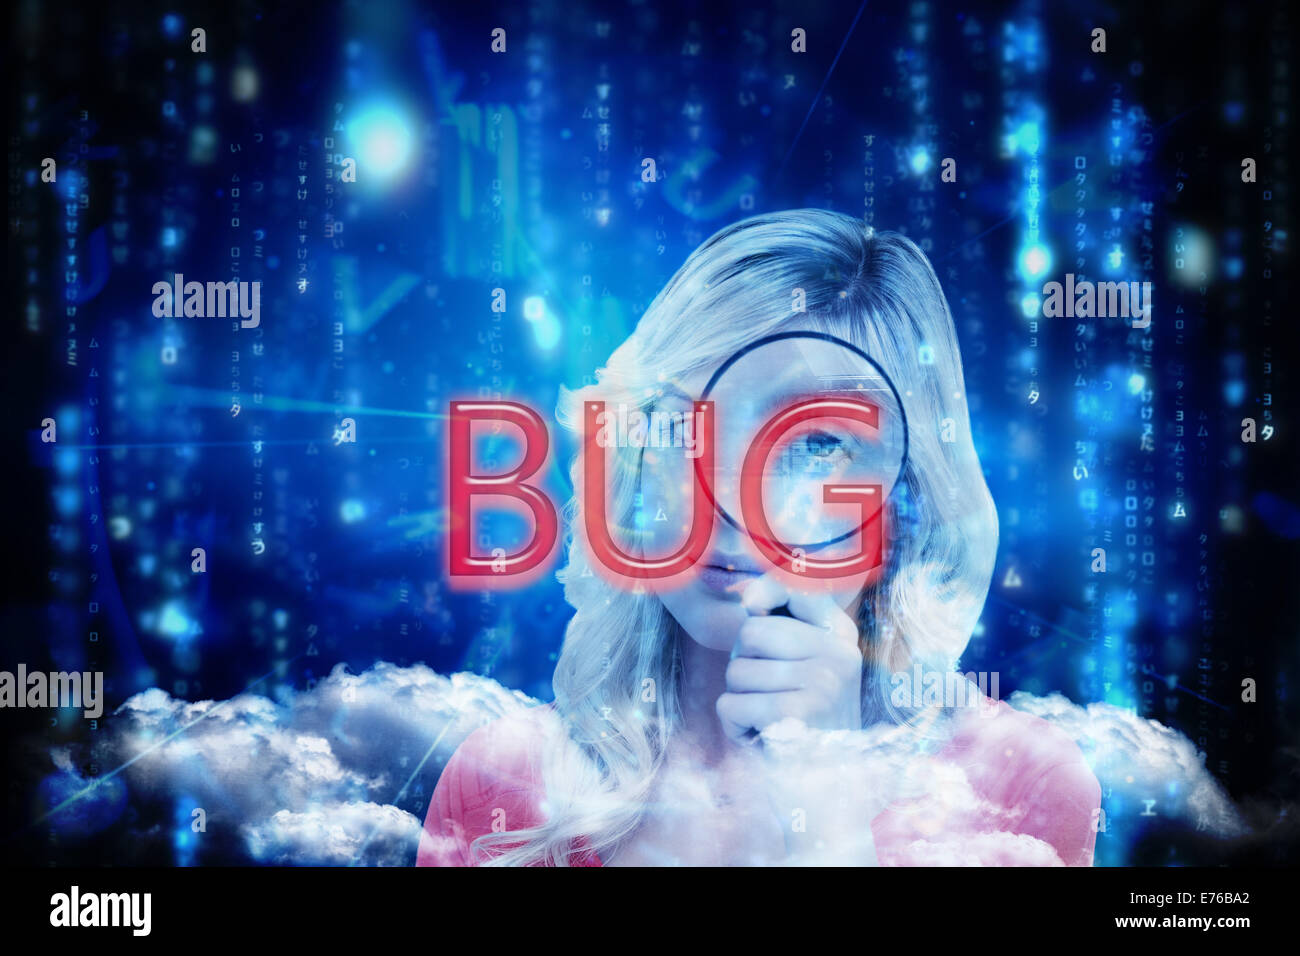 Bug against lines of blue blurred letters falling - Stock Image